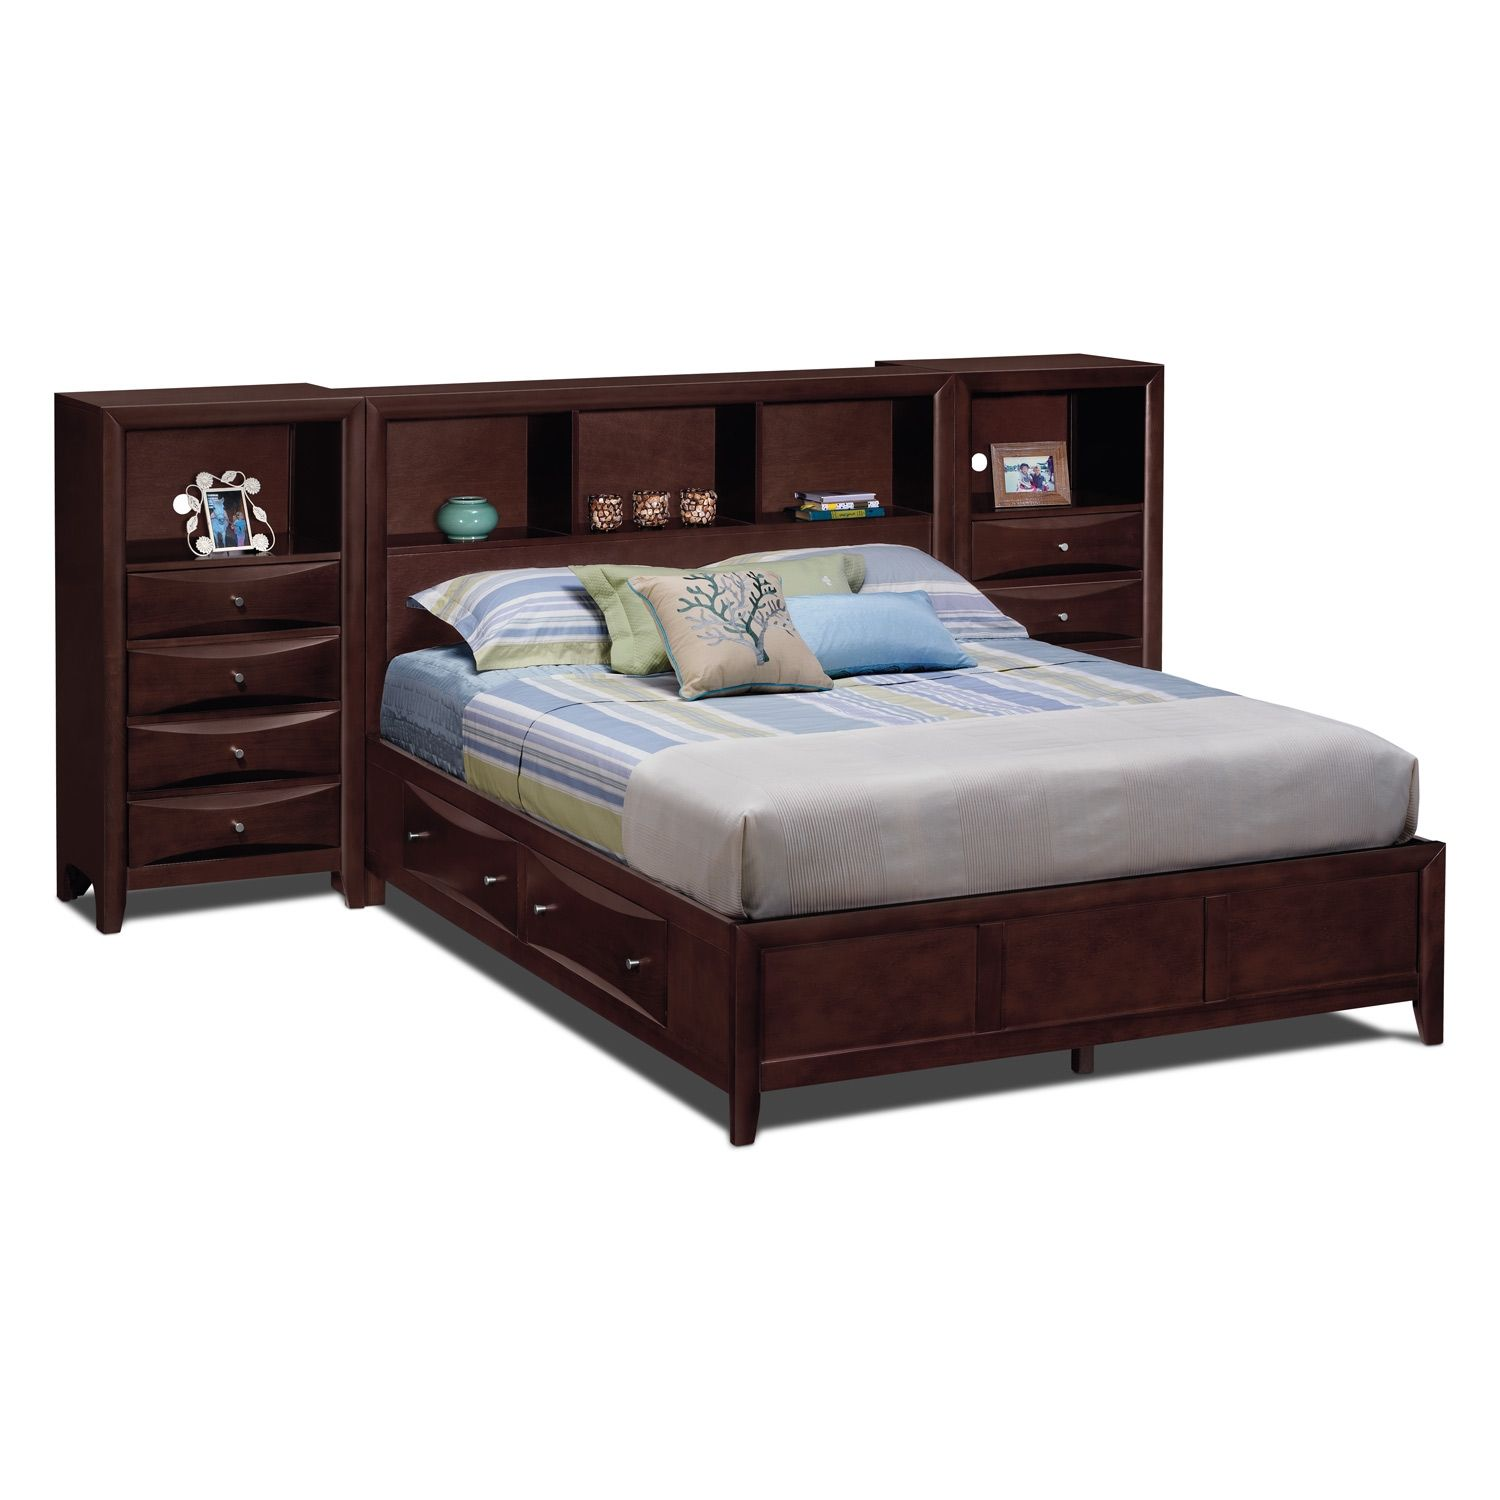 Kensington Bedroom Queen Wall Bed With Piers | Furniture.com · Value City  ...